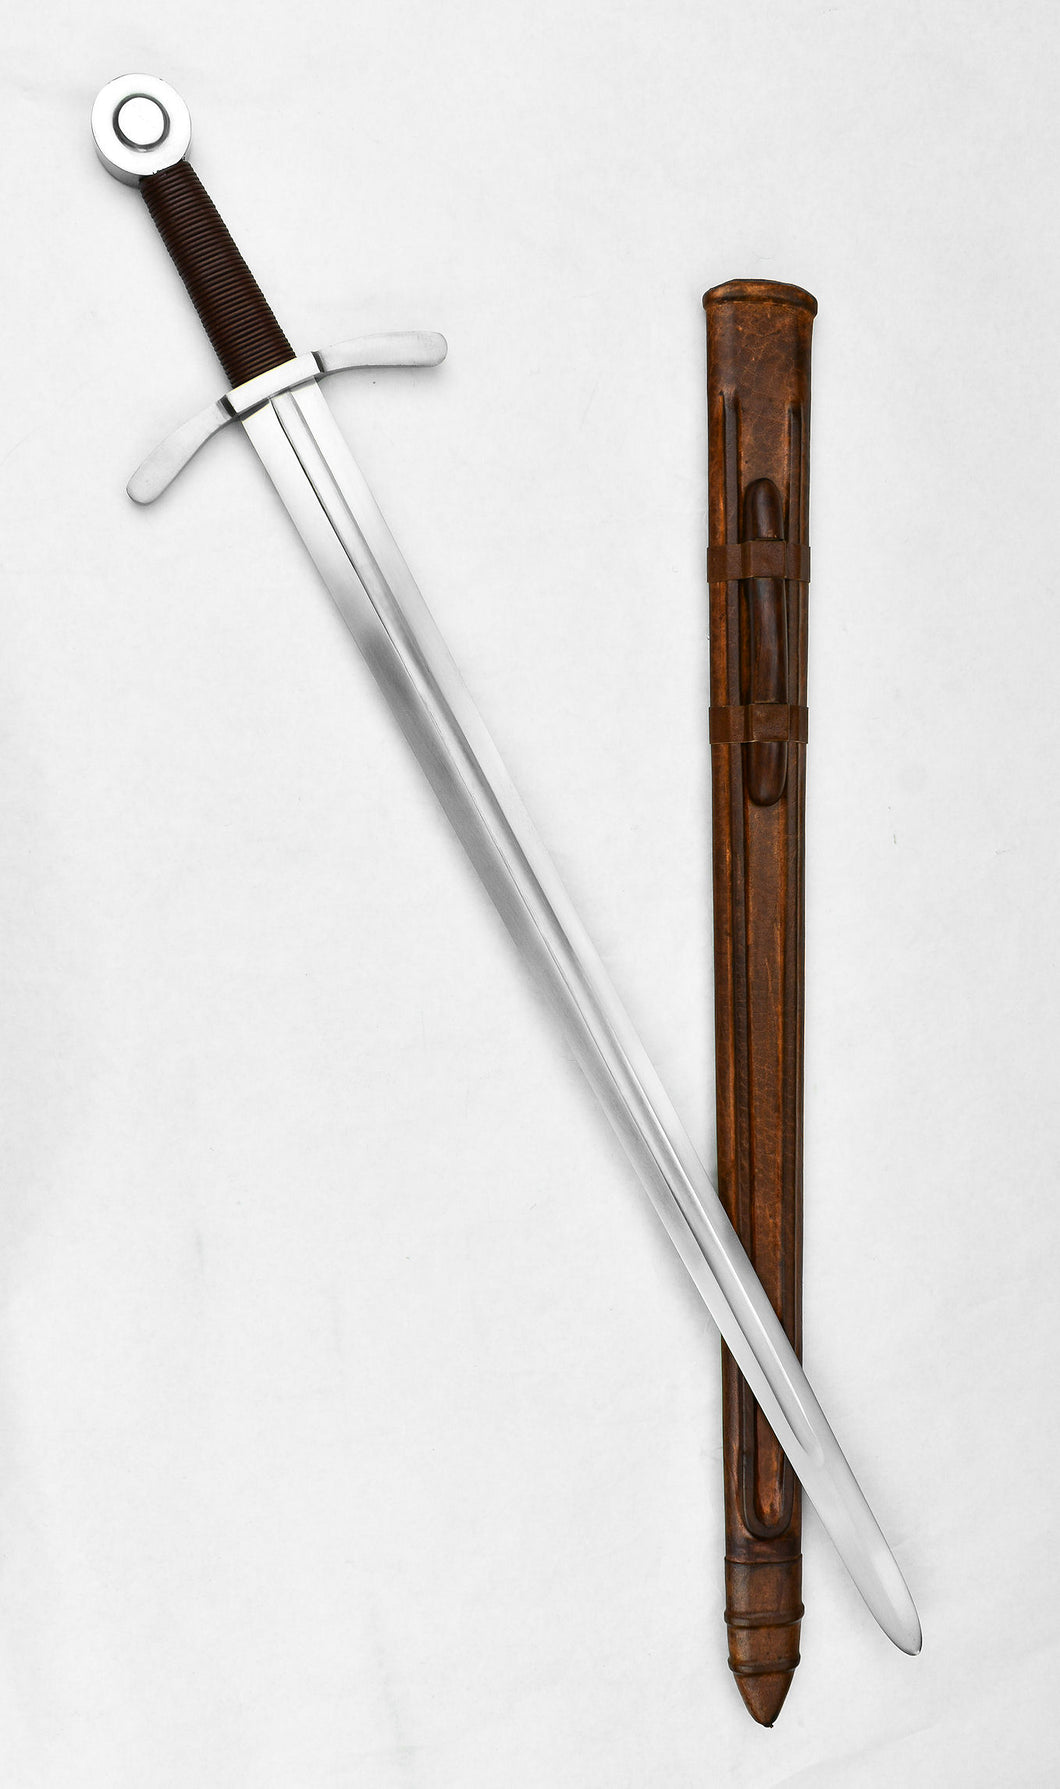 Late Medieval Arming Sword - Stage Combat Version by Deepeeka